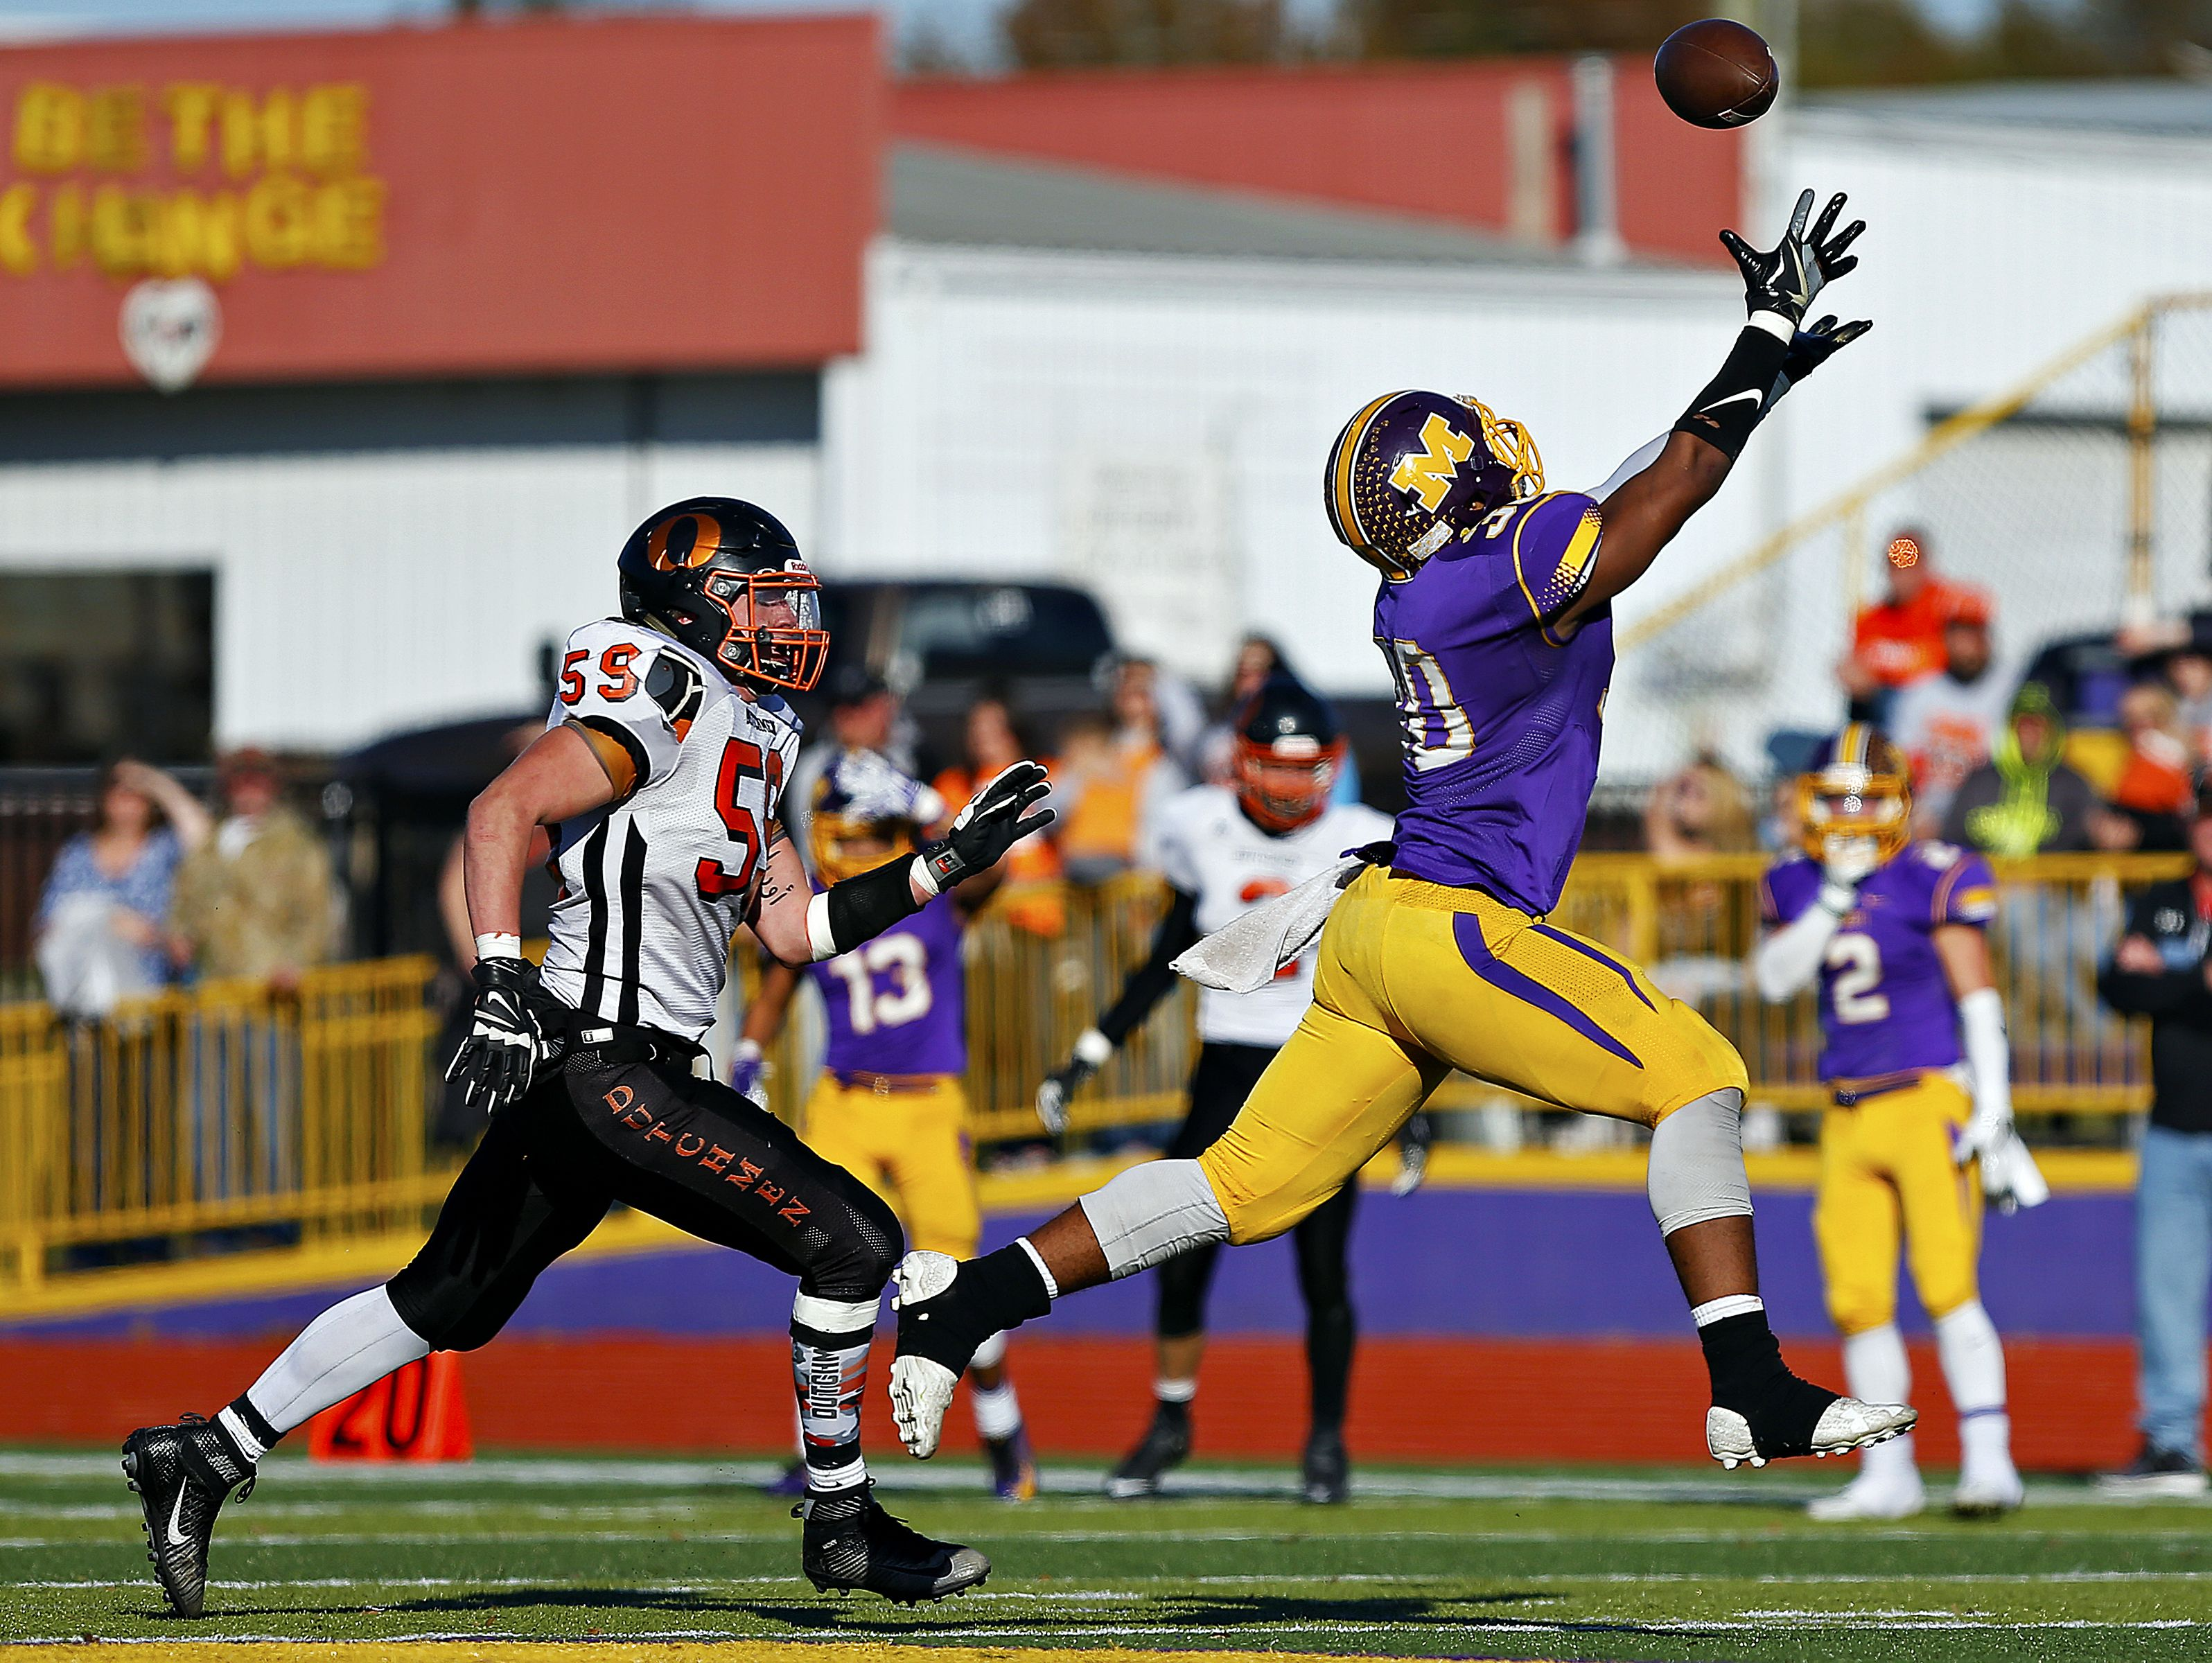 Monett High School running back Michael Branch (30) reaches to catch a pass during third quarter action of the quarterfinal playoff game between Monett High School and Owensville High School played at Burl Fowler Stadium in Monett, Mo. on Nov. 12, 2016. The Monett Cubs won the game 48-20.